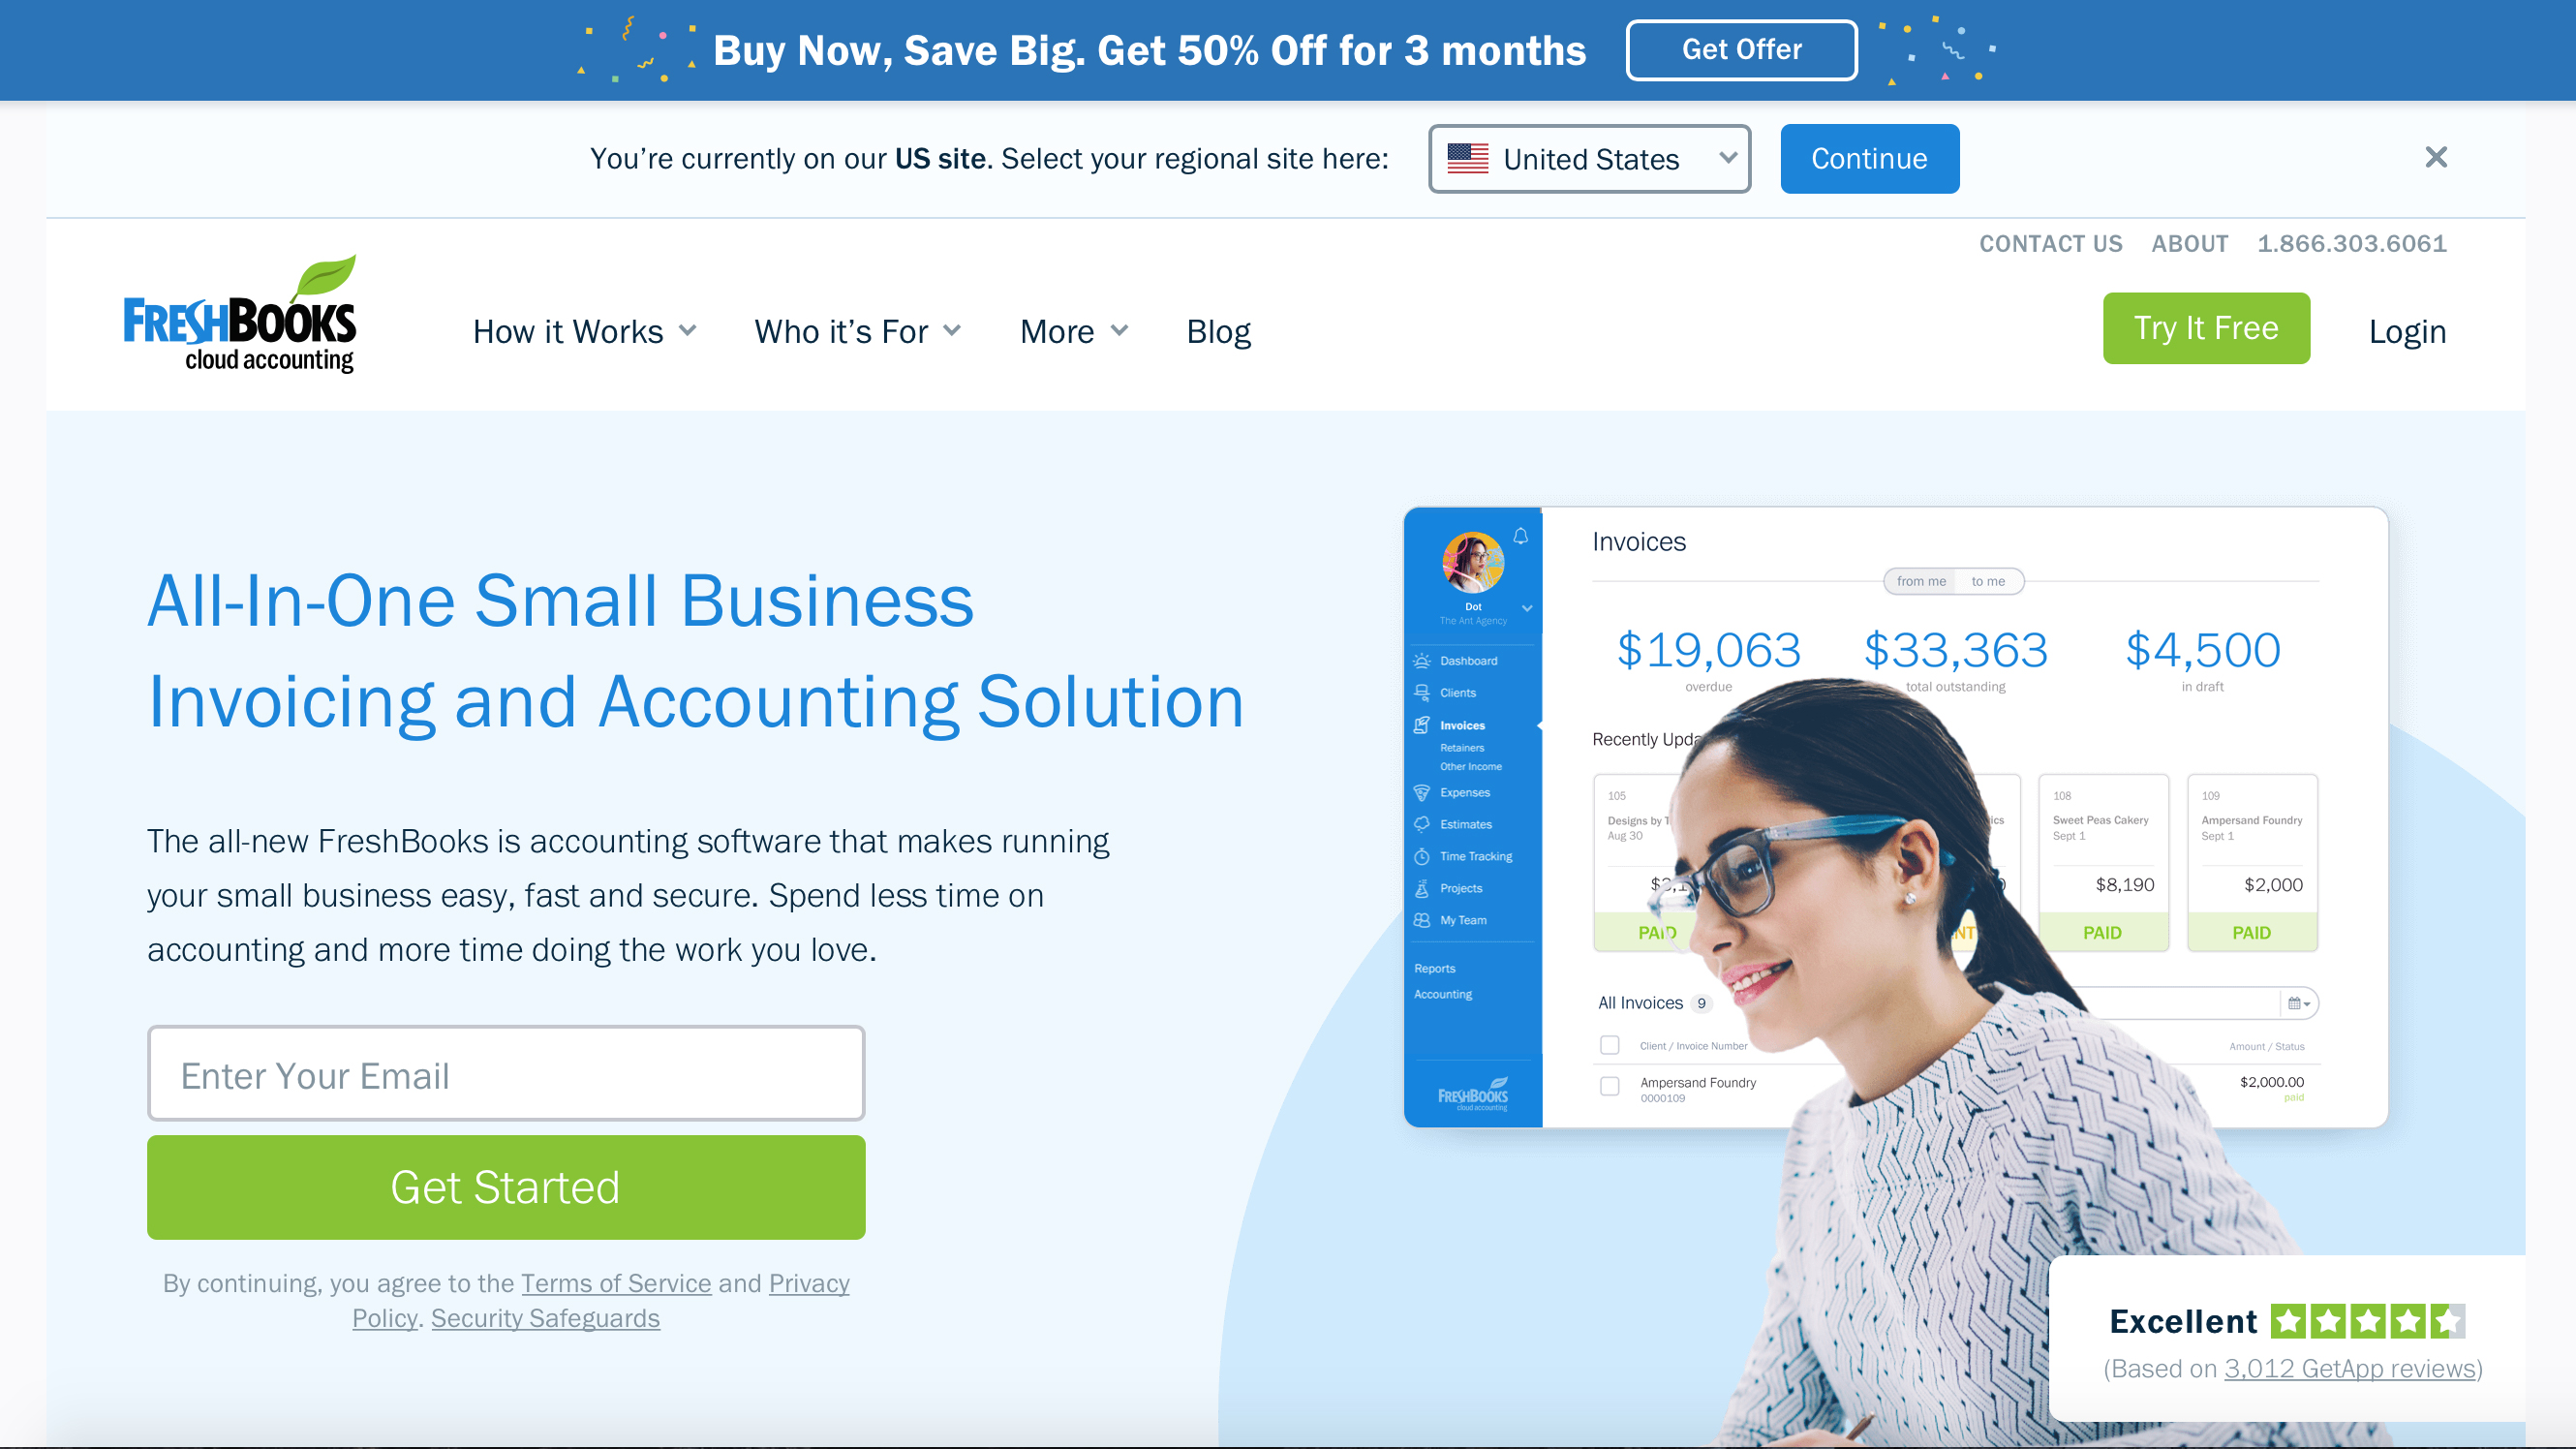 Extended Warranty Cost Freshbooks Accounting Software